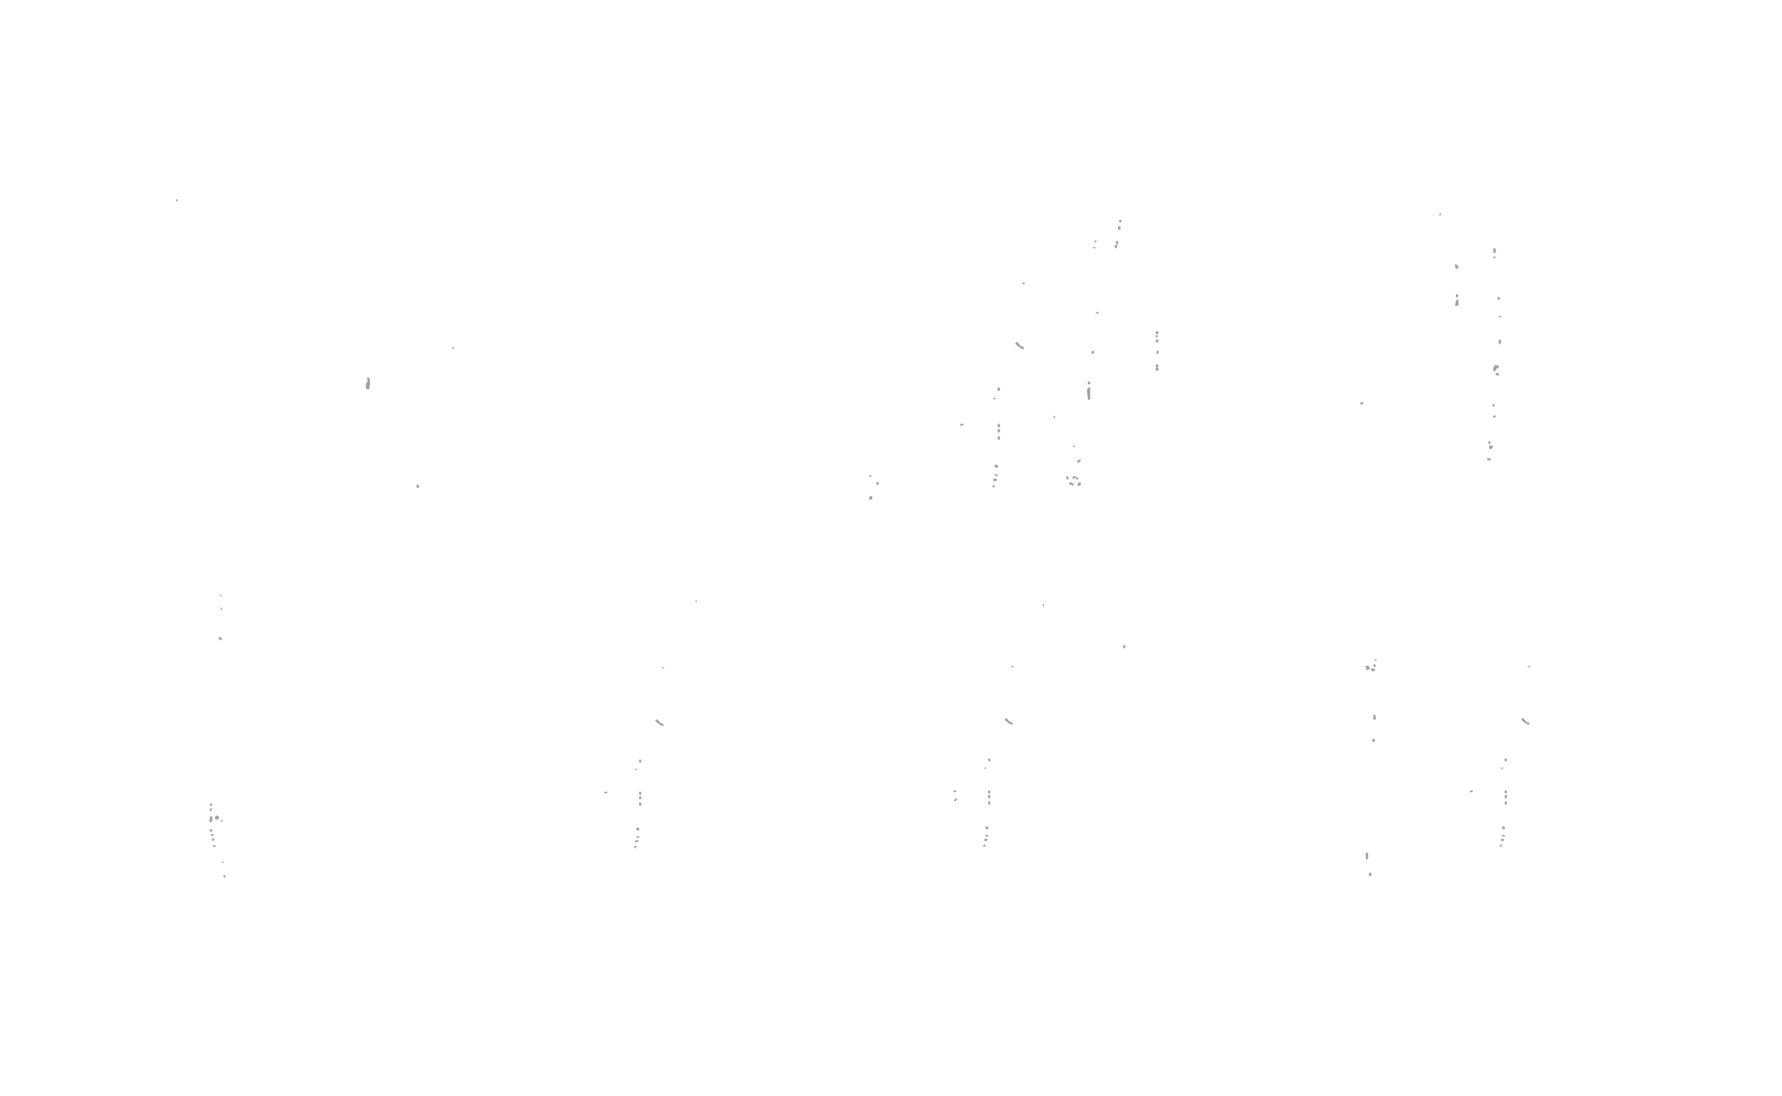 Thousand First Steps